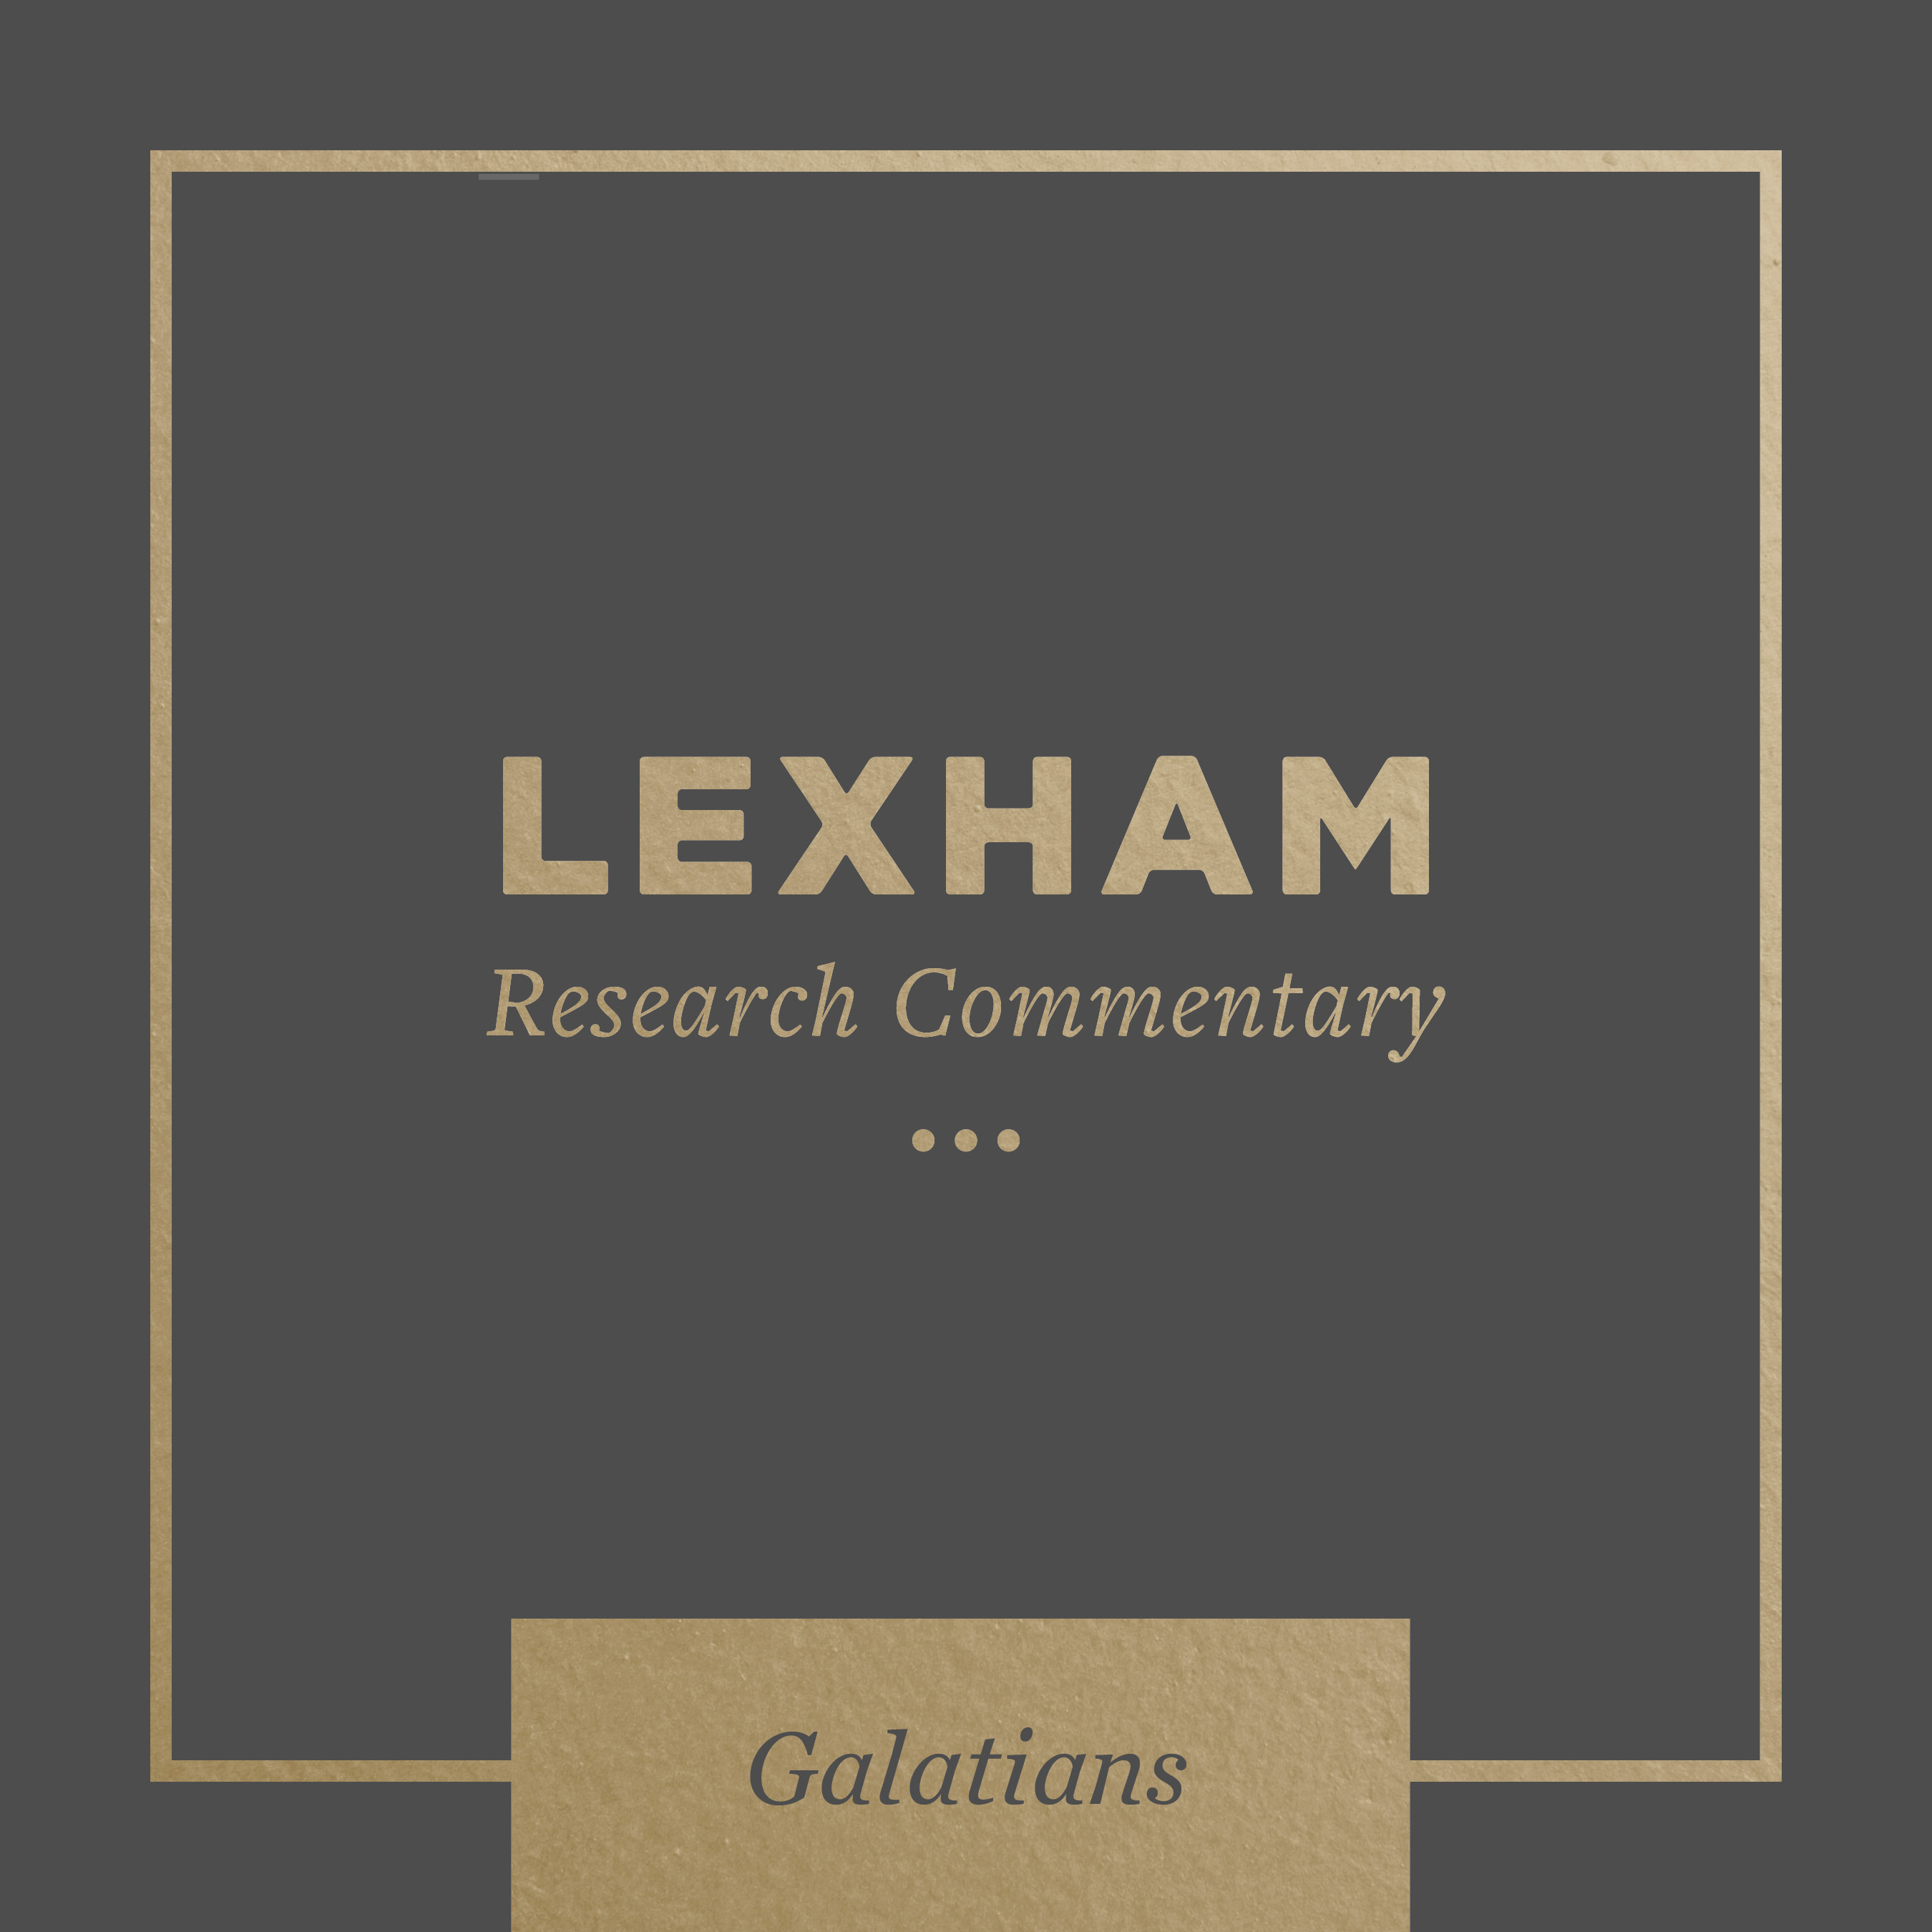 Lexham Research Commentary: Galatians